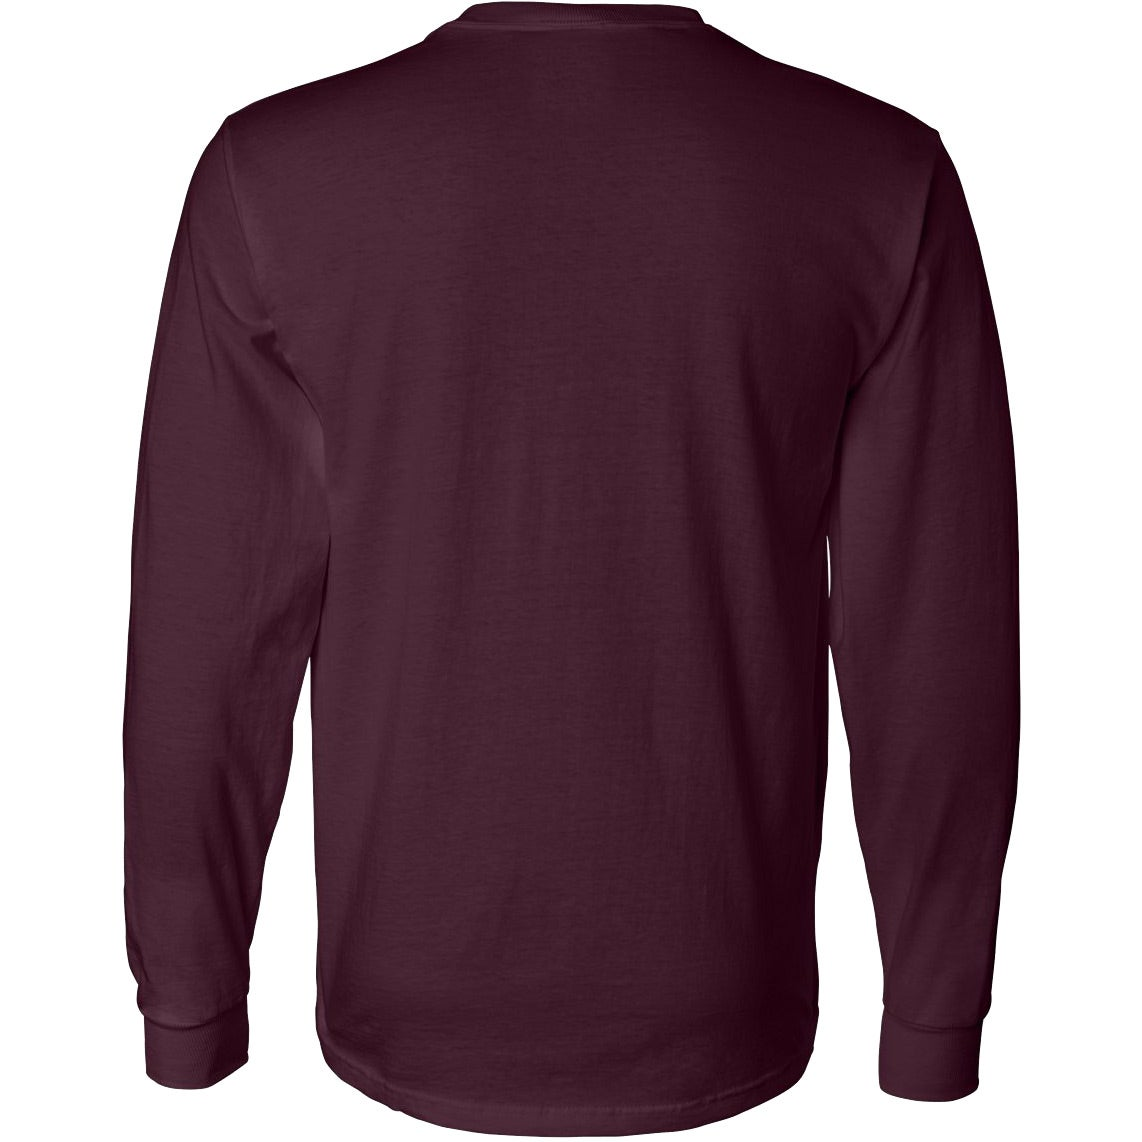 Fruit of the loom long sleeve cotton t shirt colors for Long sleeve cotton tee shirts